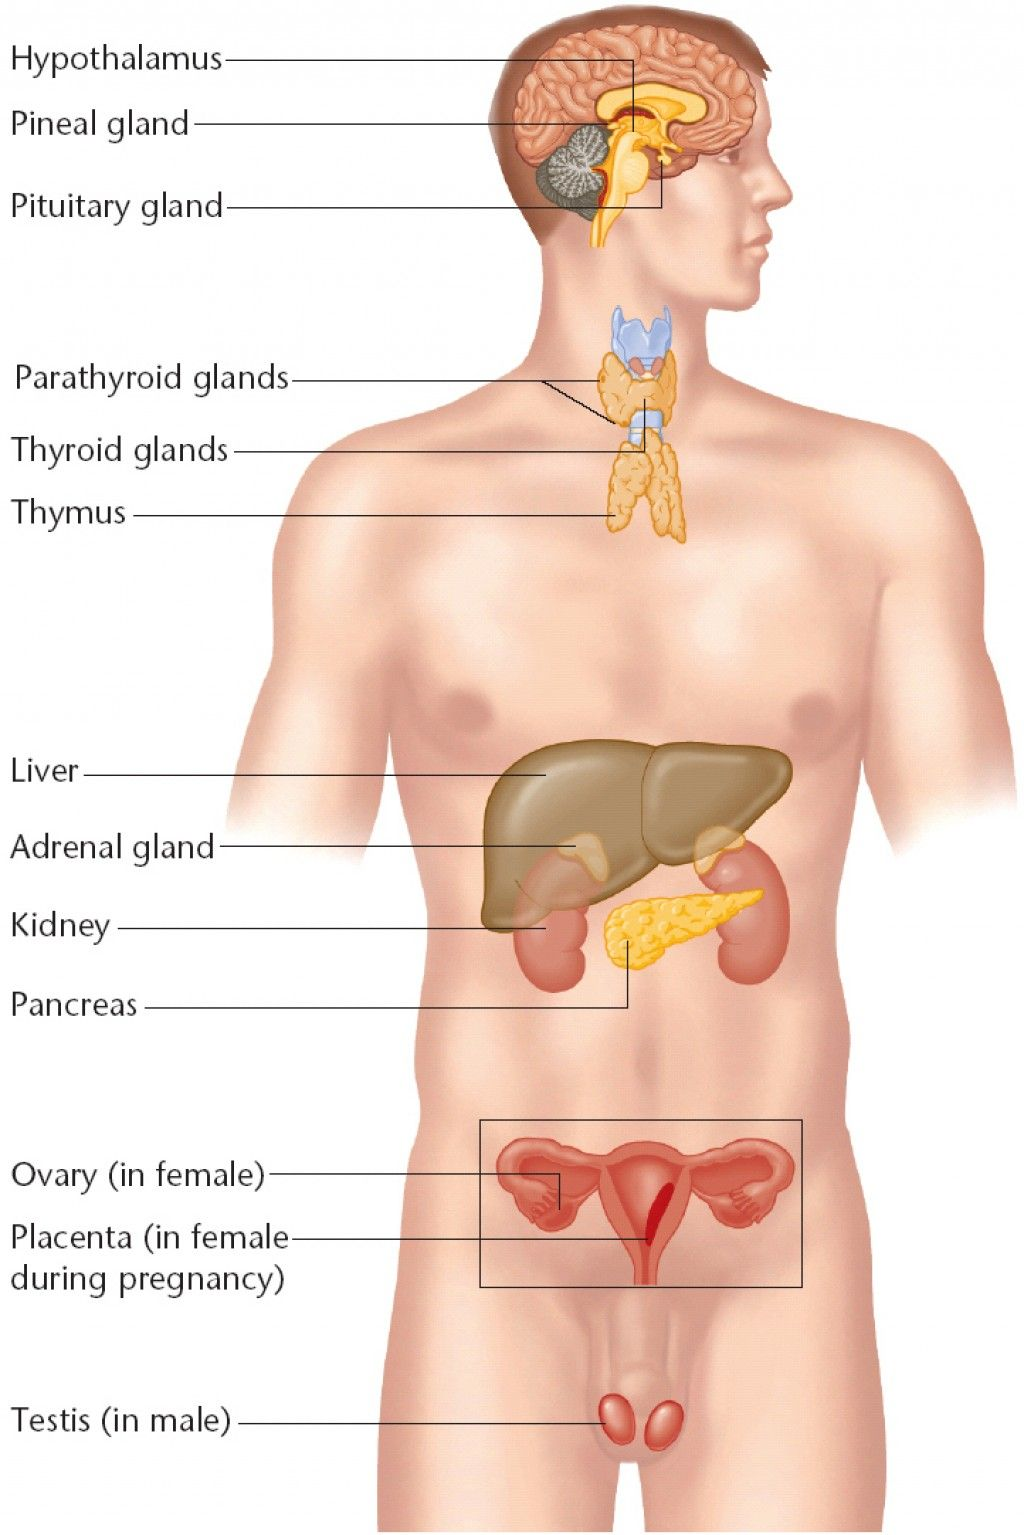 General Considerations In Endocrinology And The Endocrine System